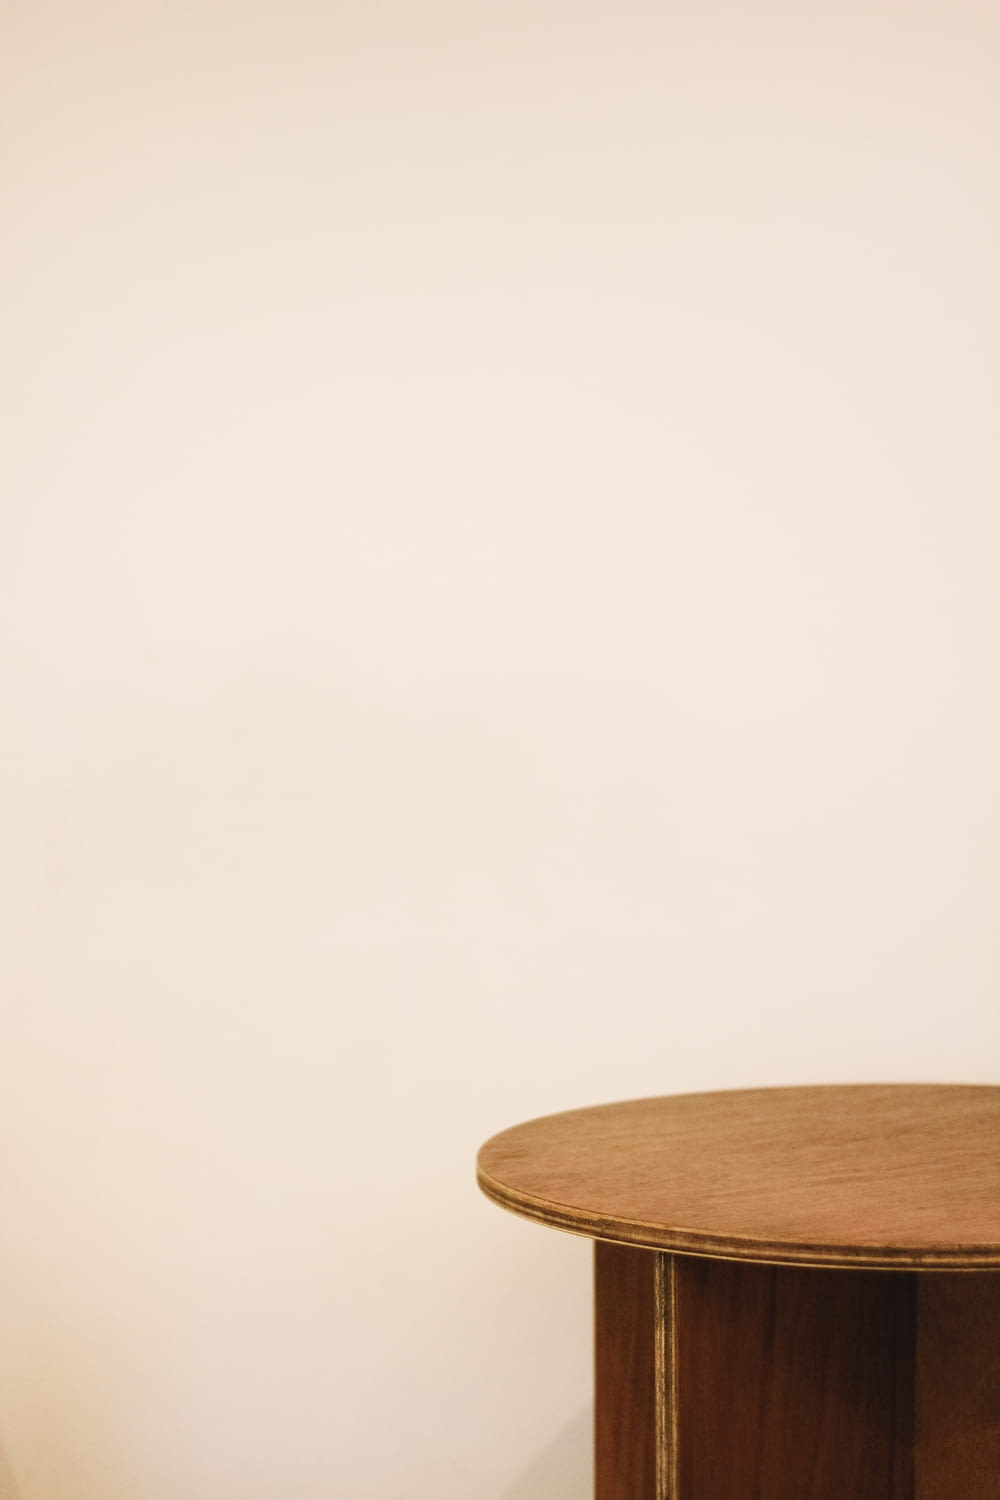 brown wooden end table beside white wall